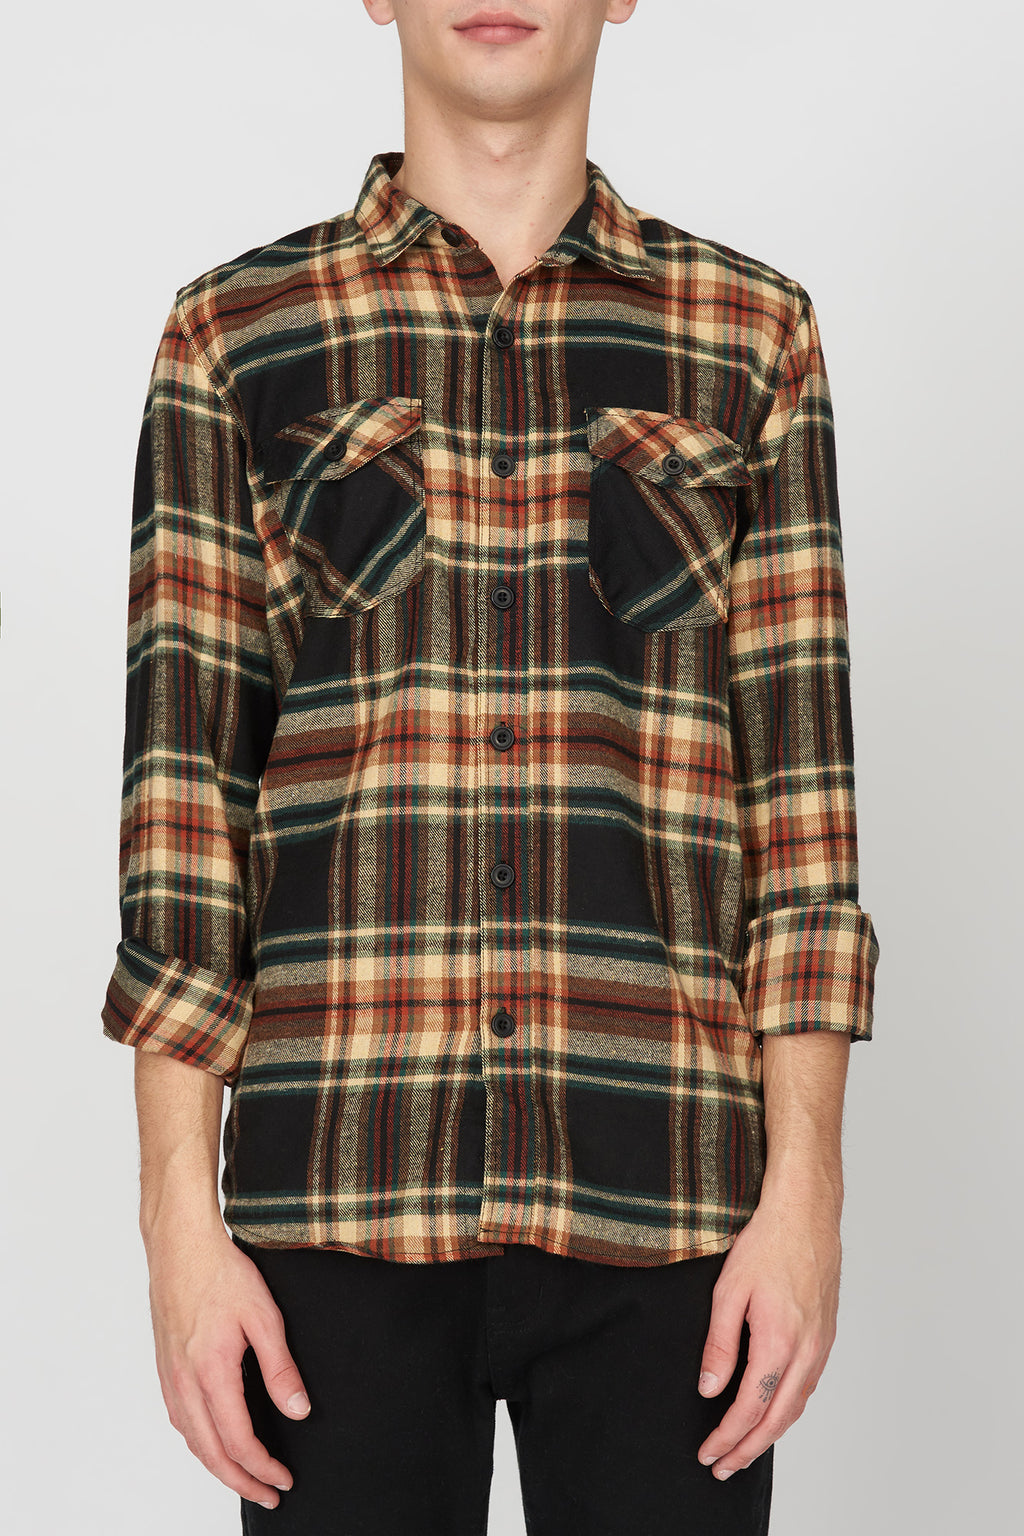 West49 Mens Plaid Shirt